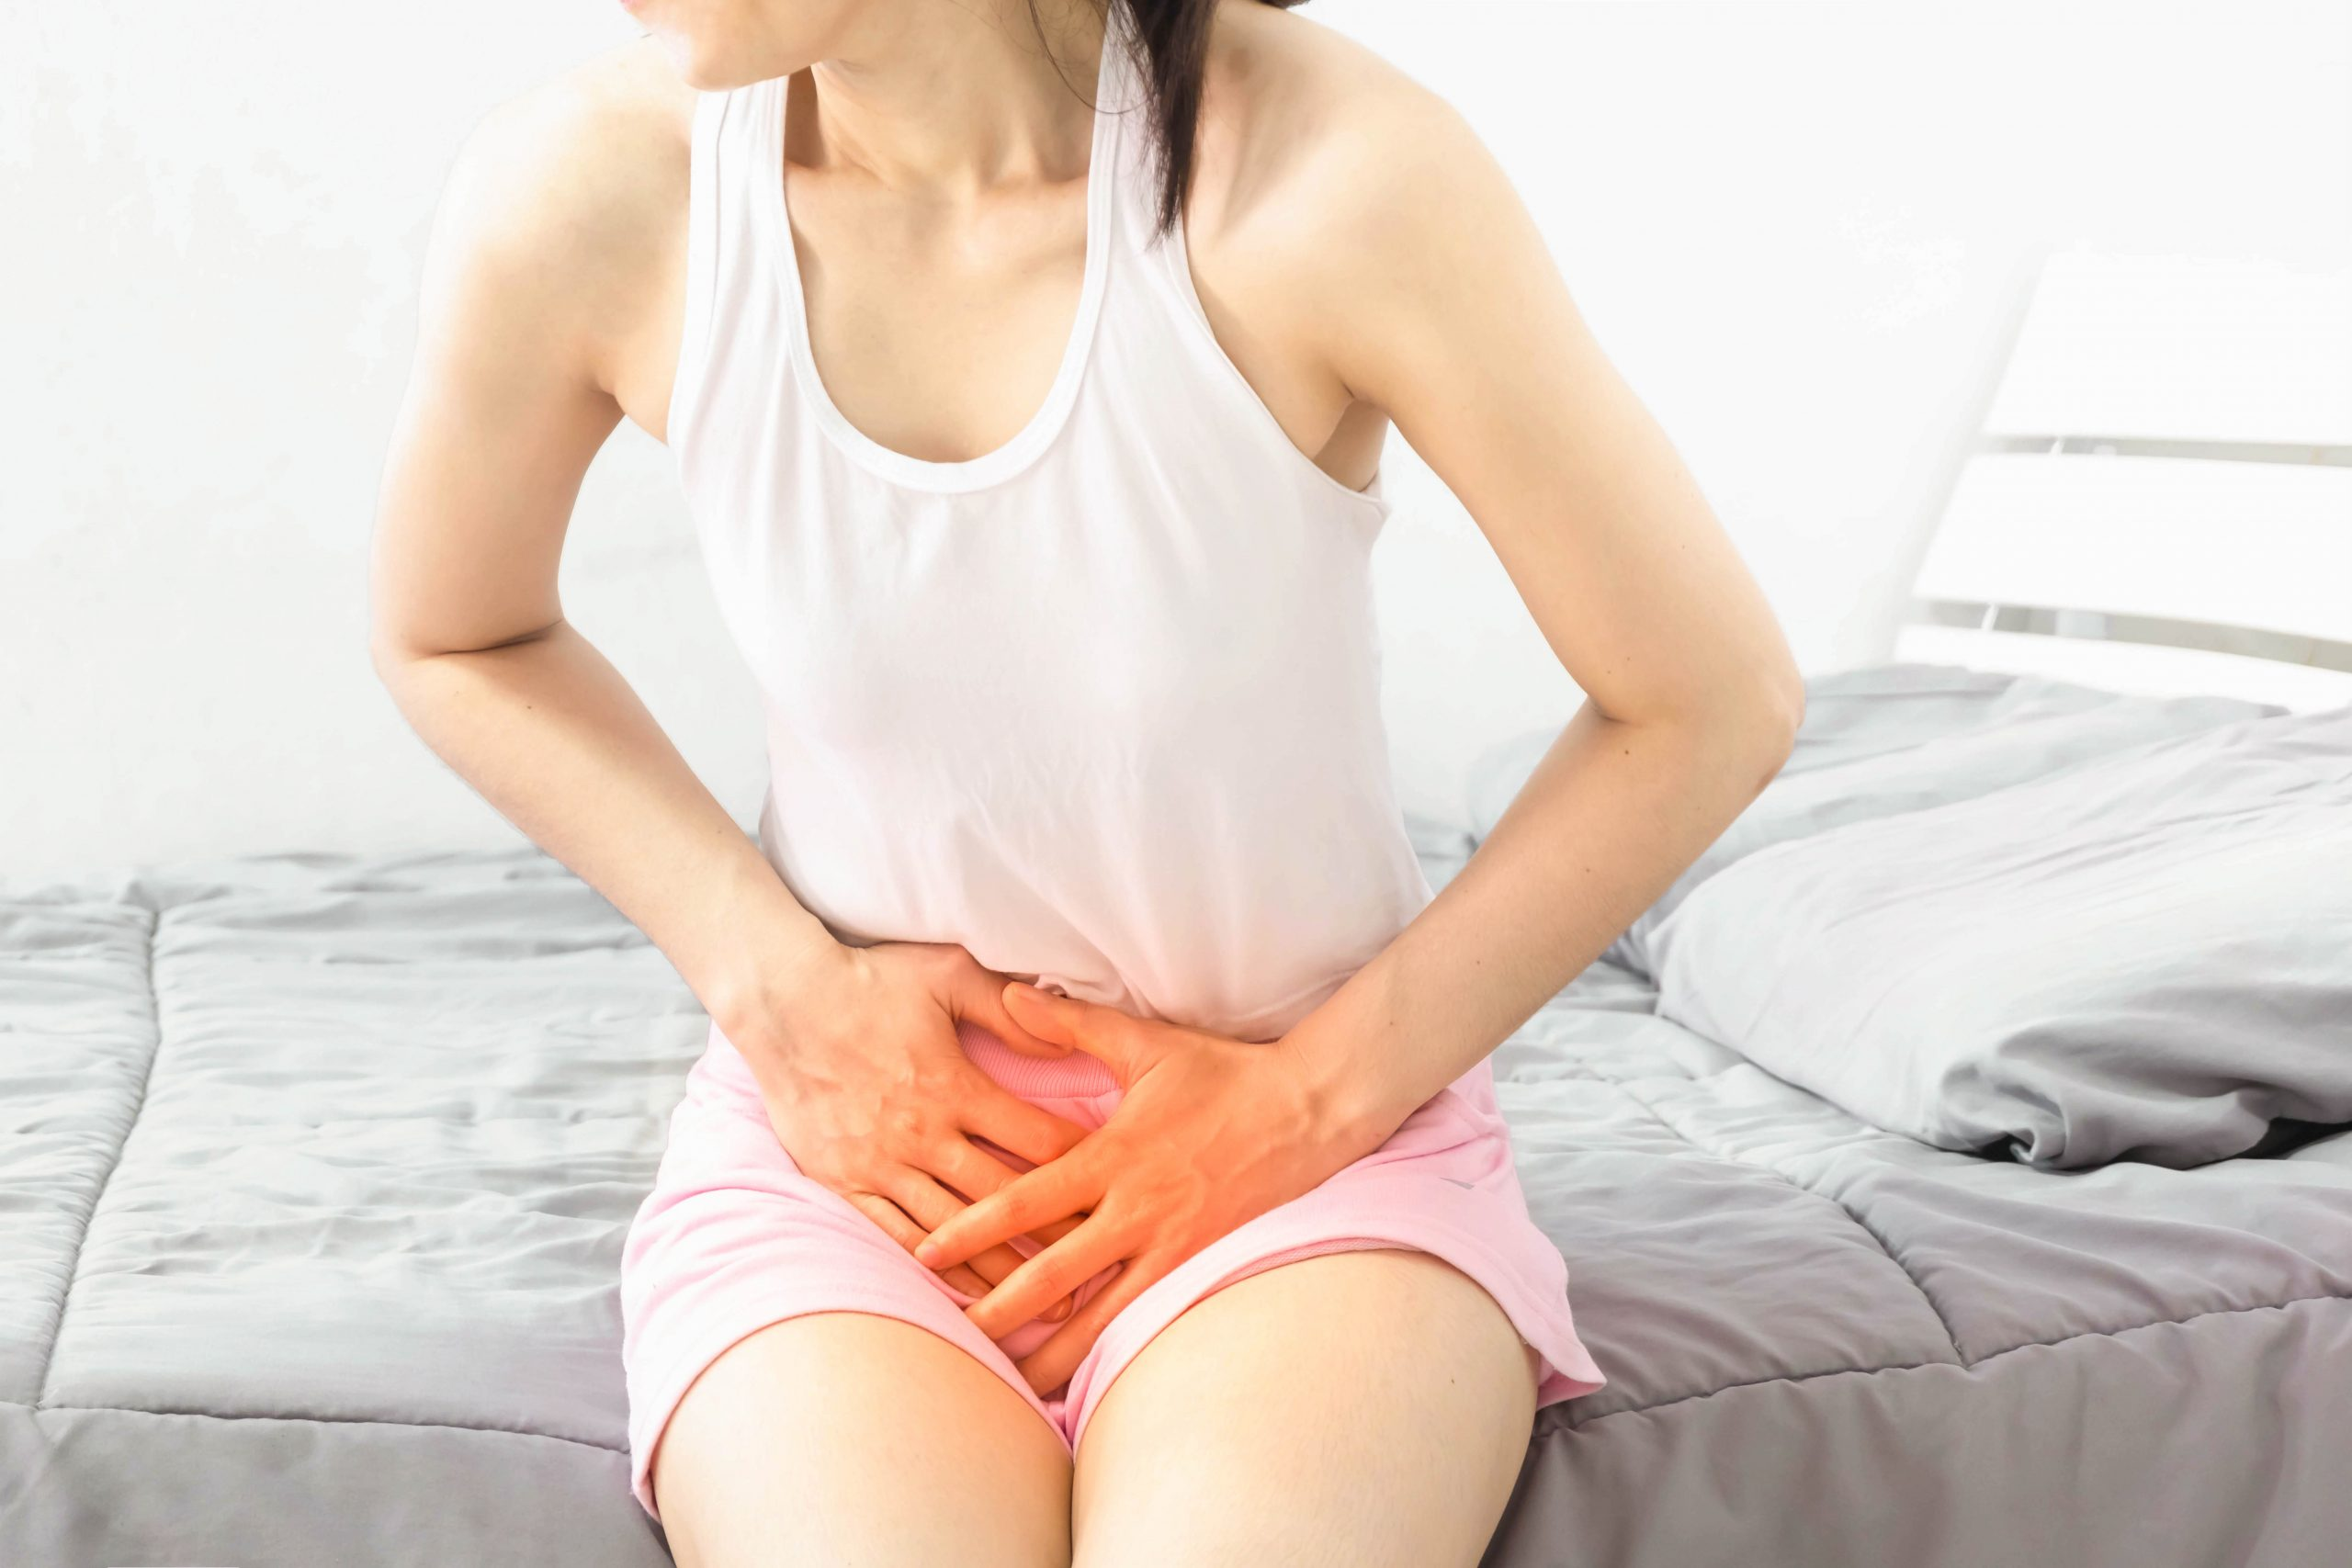 Can UTI symptoms linger after antibiotics? The Truth Revealed